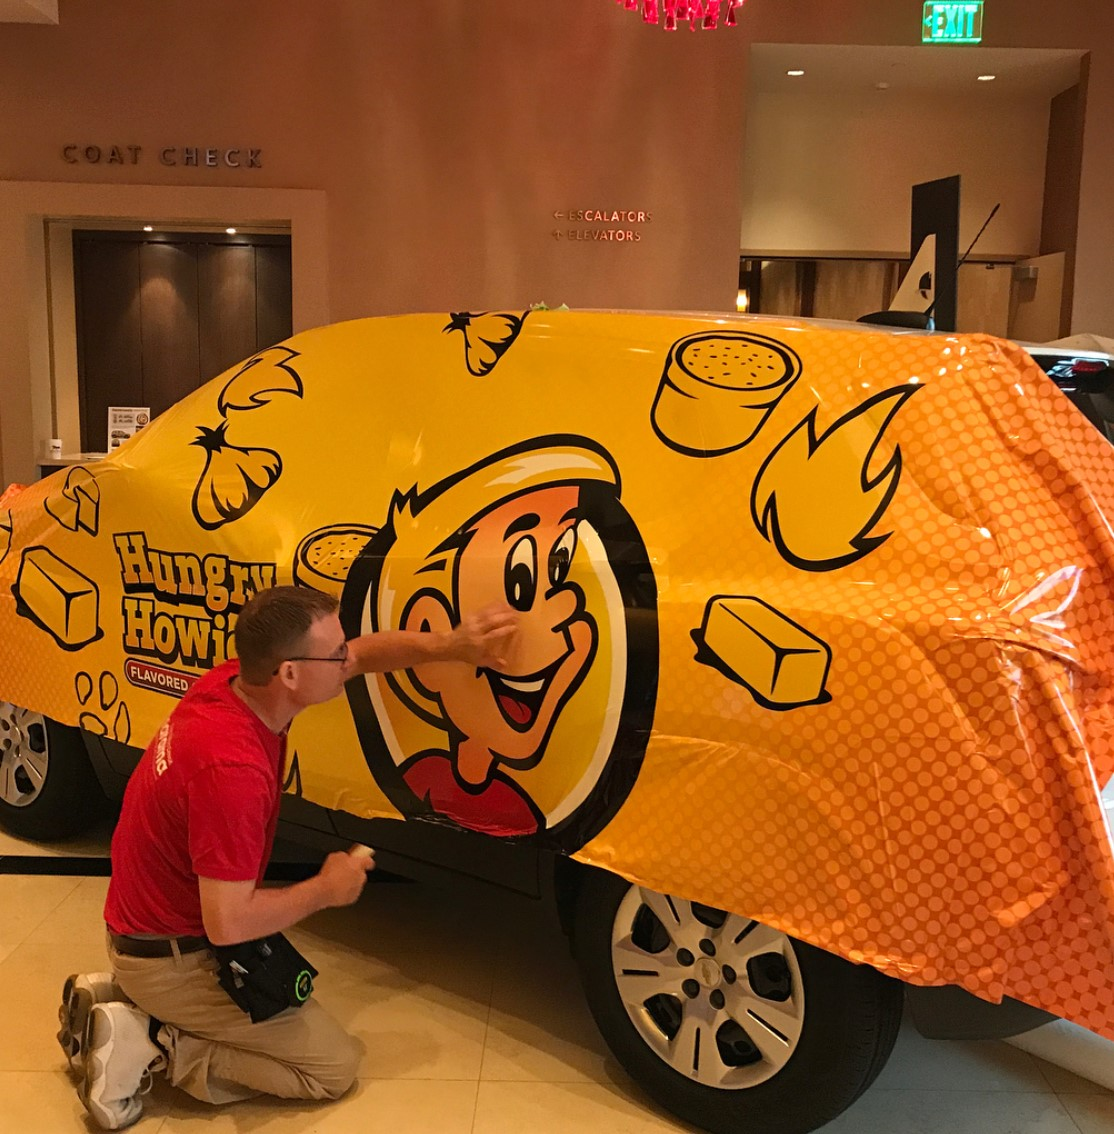 Hungry Howies Wrap - Vehicle Wrap Wrapping Left Rear - Madison Heights